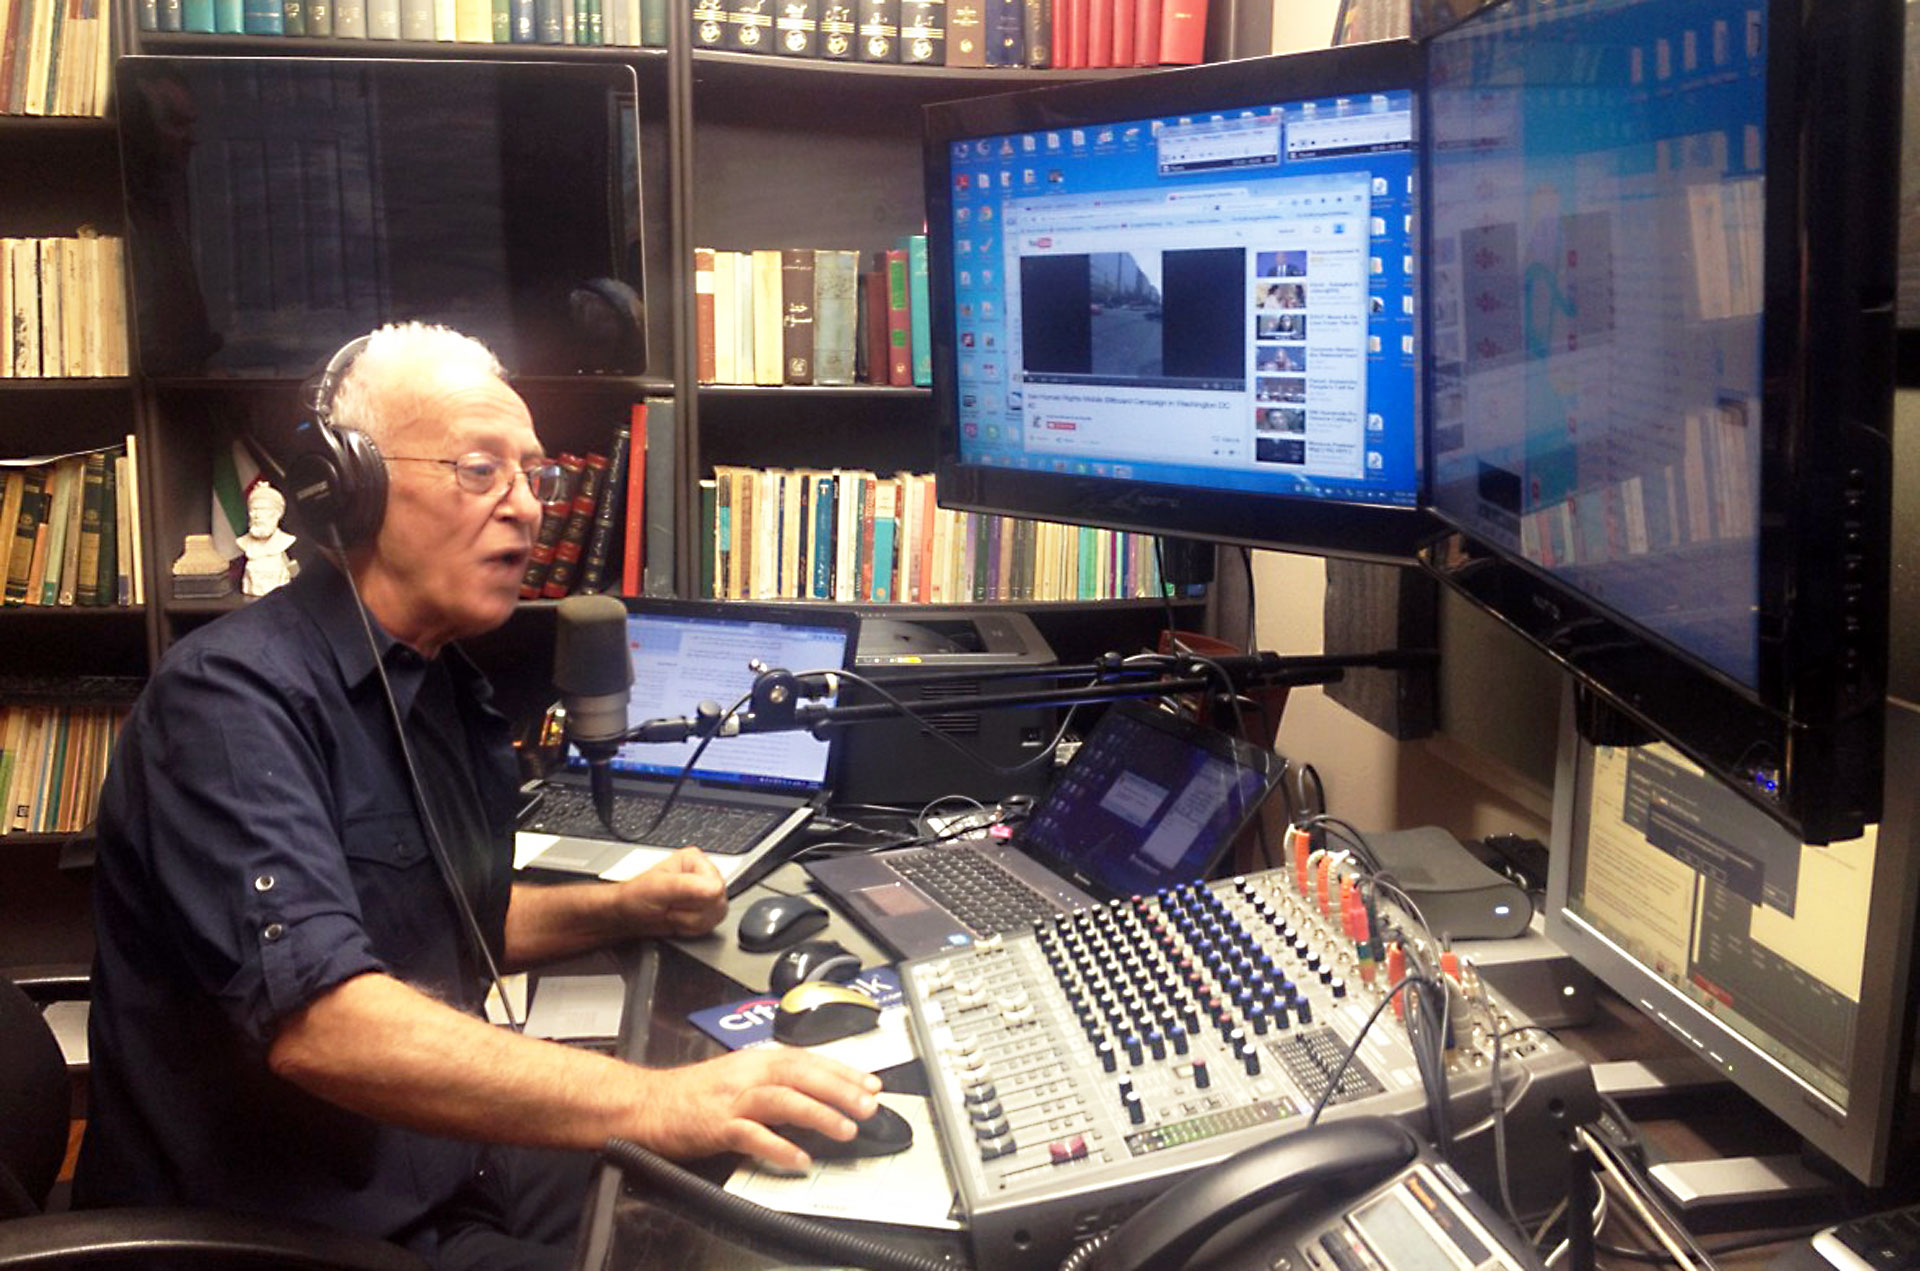 """Saeed Ghaemmaghami takes calls from listeners around the world during his Internet broadcast, Radio Sedaye Mardom, Farsi for """"The People's Voice."""""""